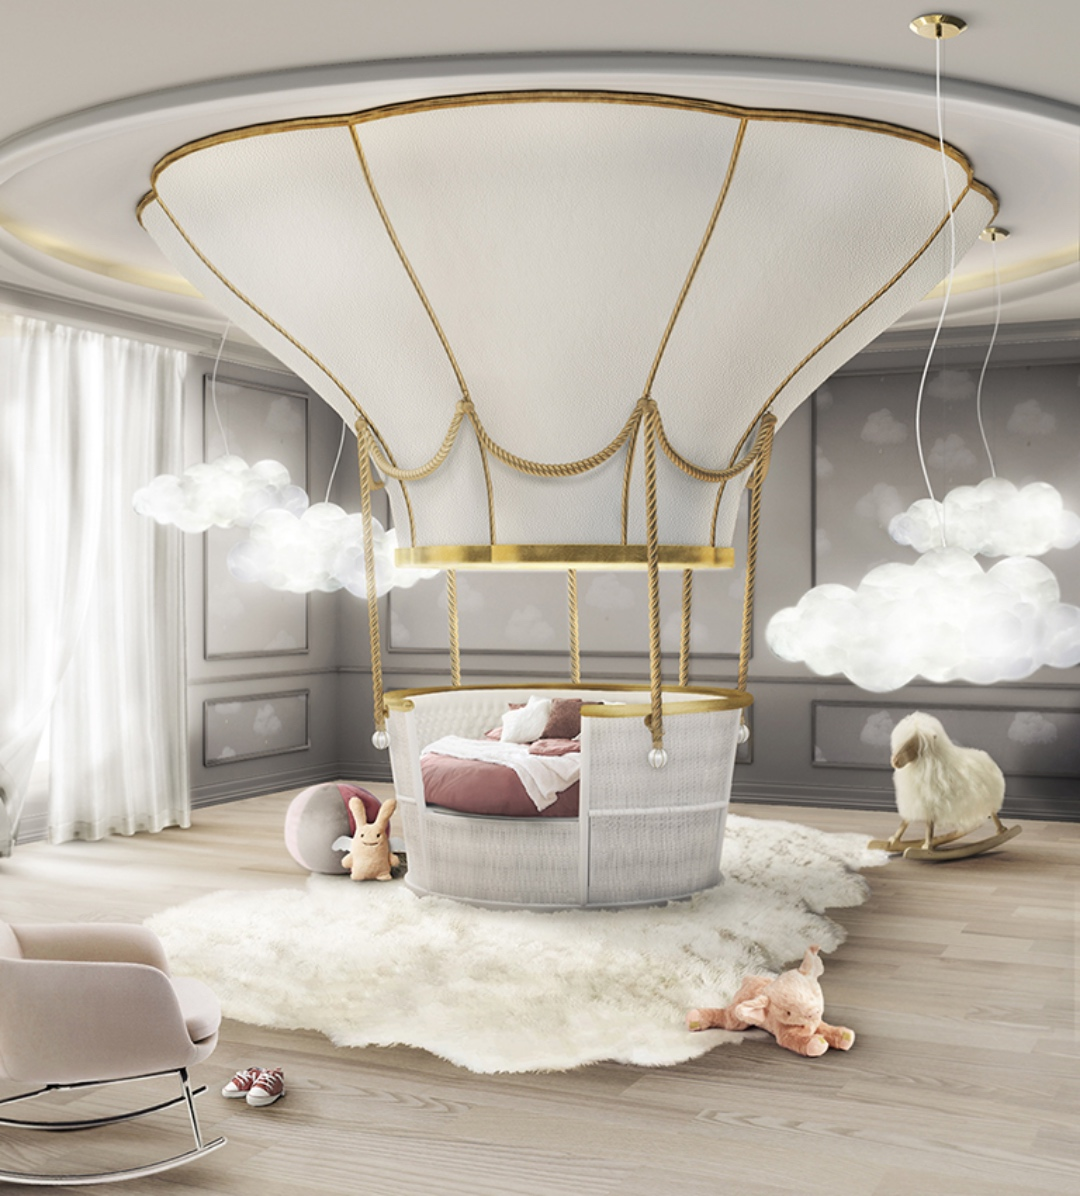 Circu magical furniture for children